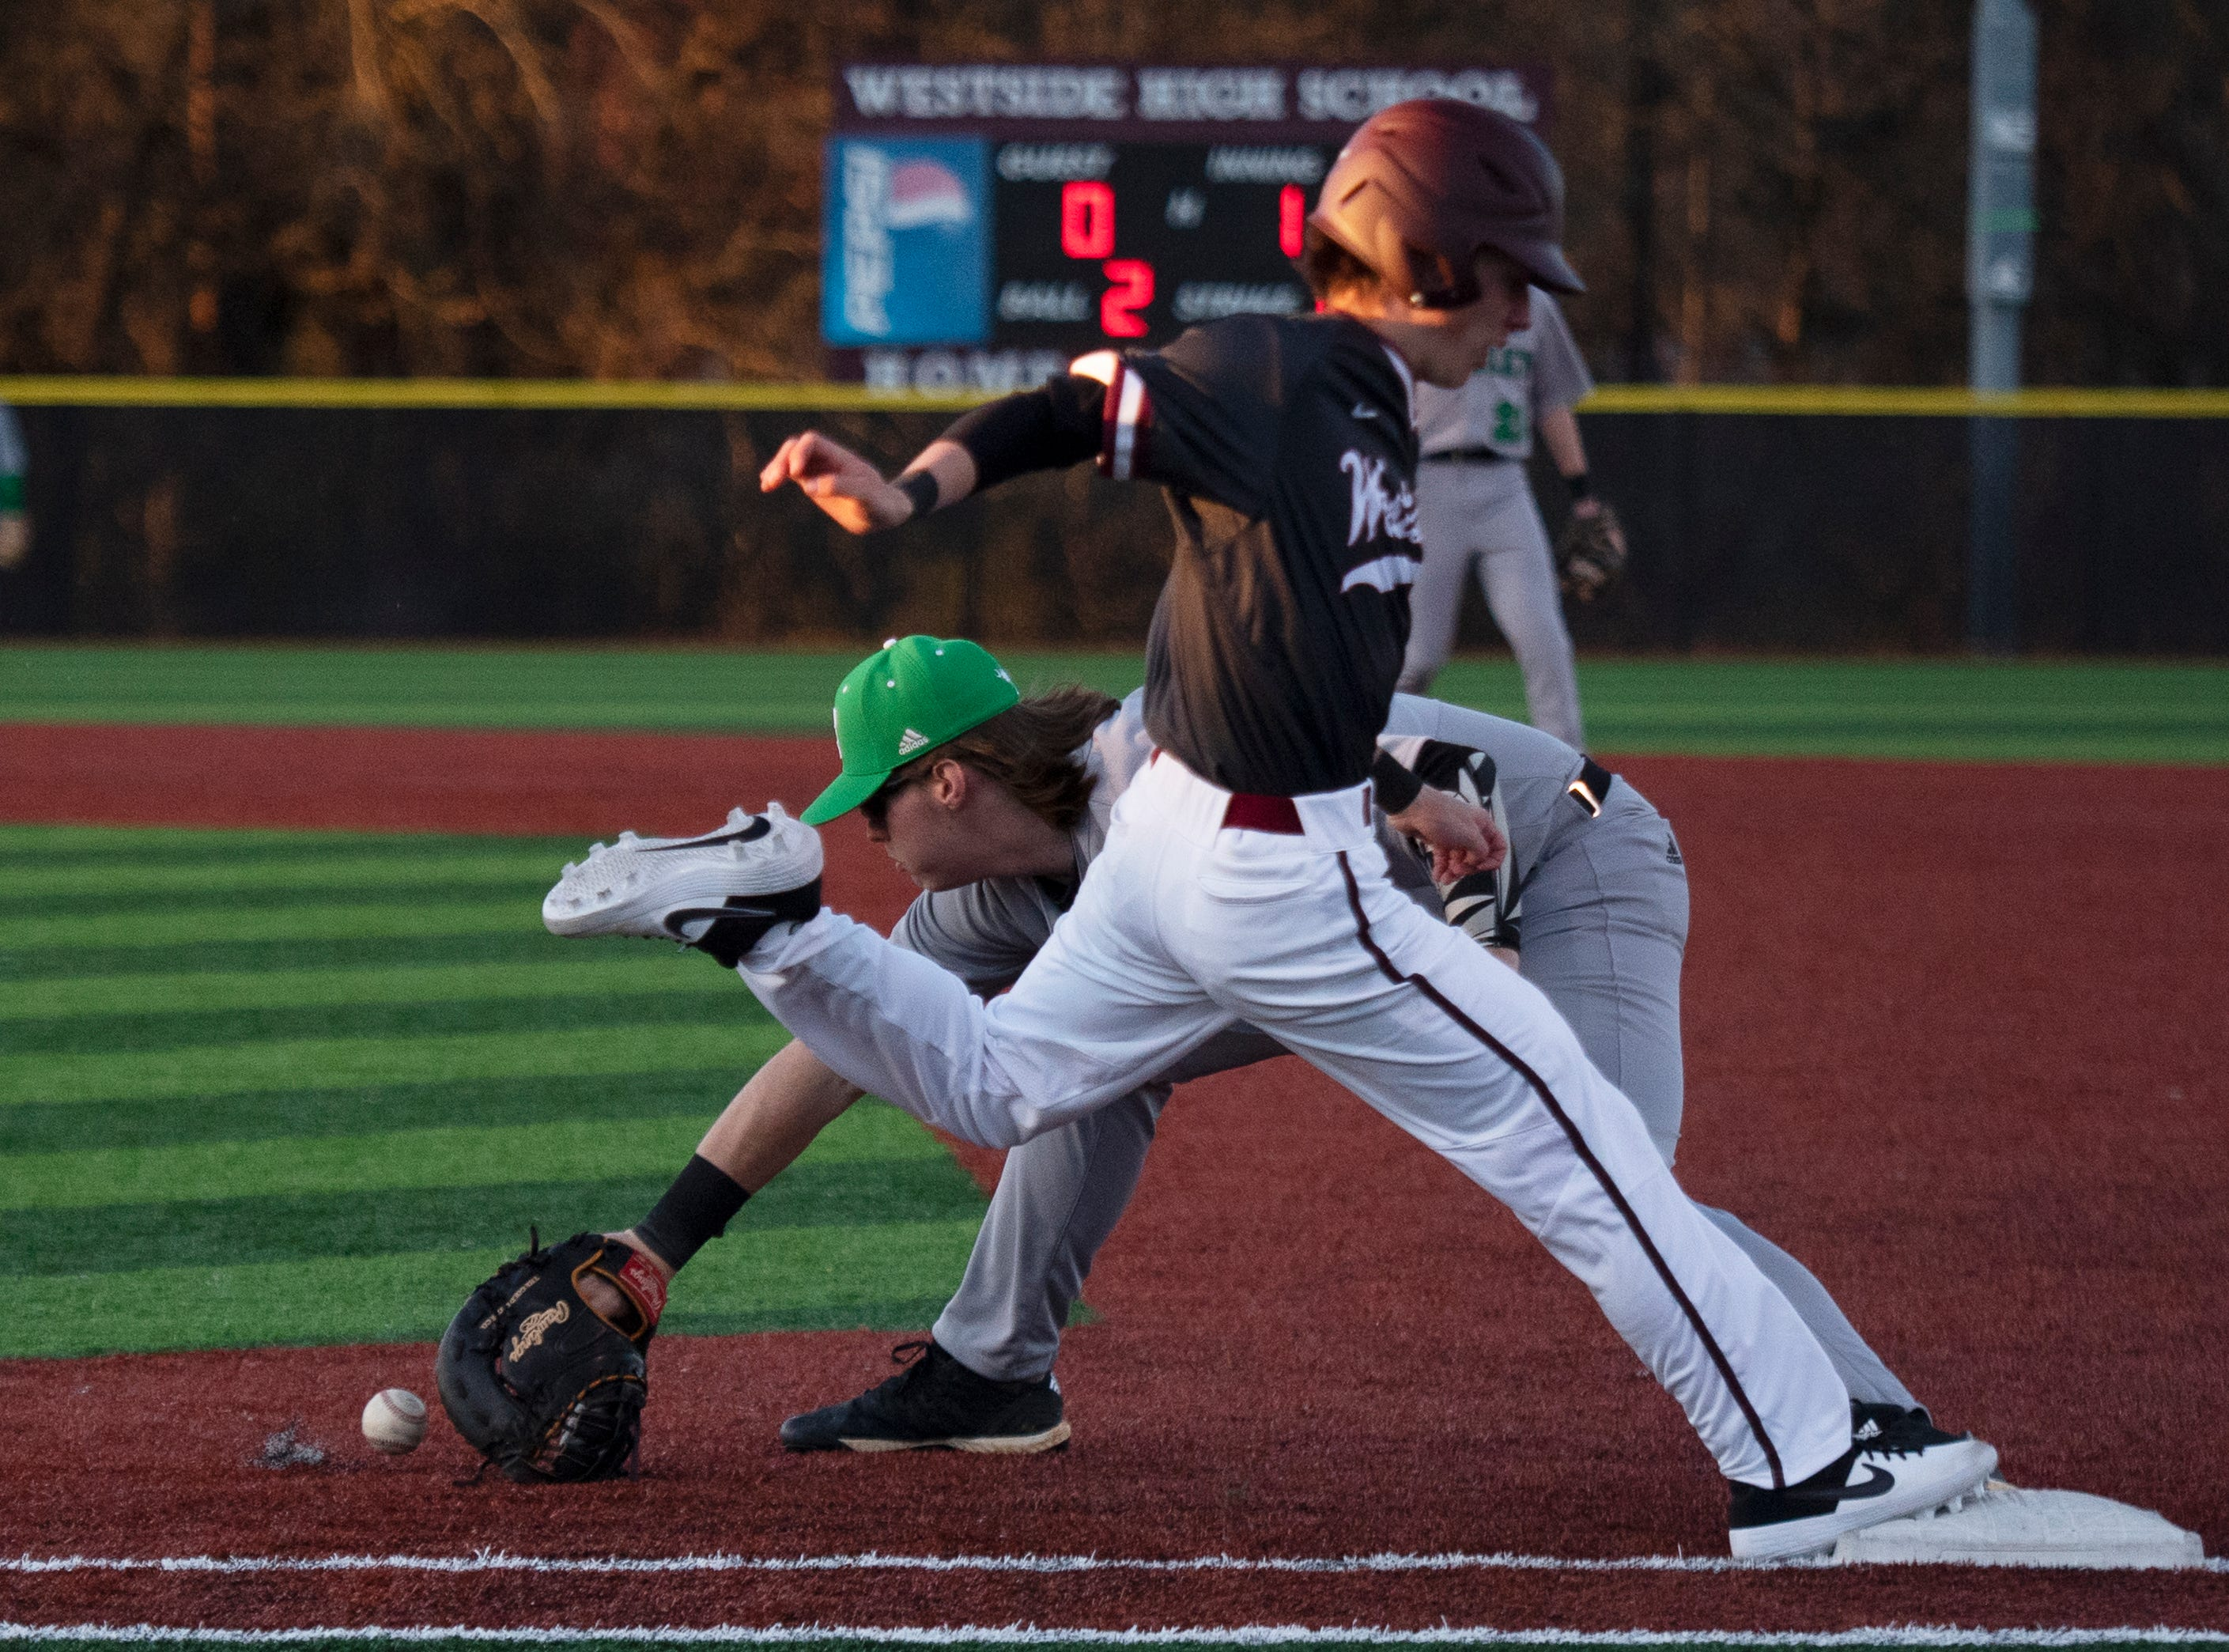 Westside High School's Cade Langston (7) is safe at first base as Easley High School's Stokes O'Shields (13) reaches for the ball at Westside High School Tuesday, Mar. 5, 2019.